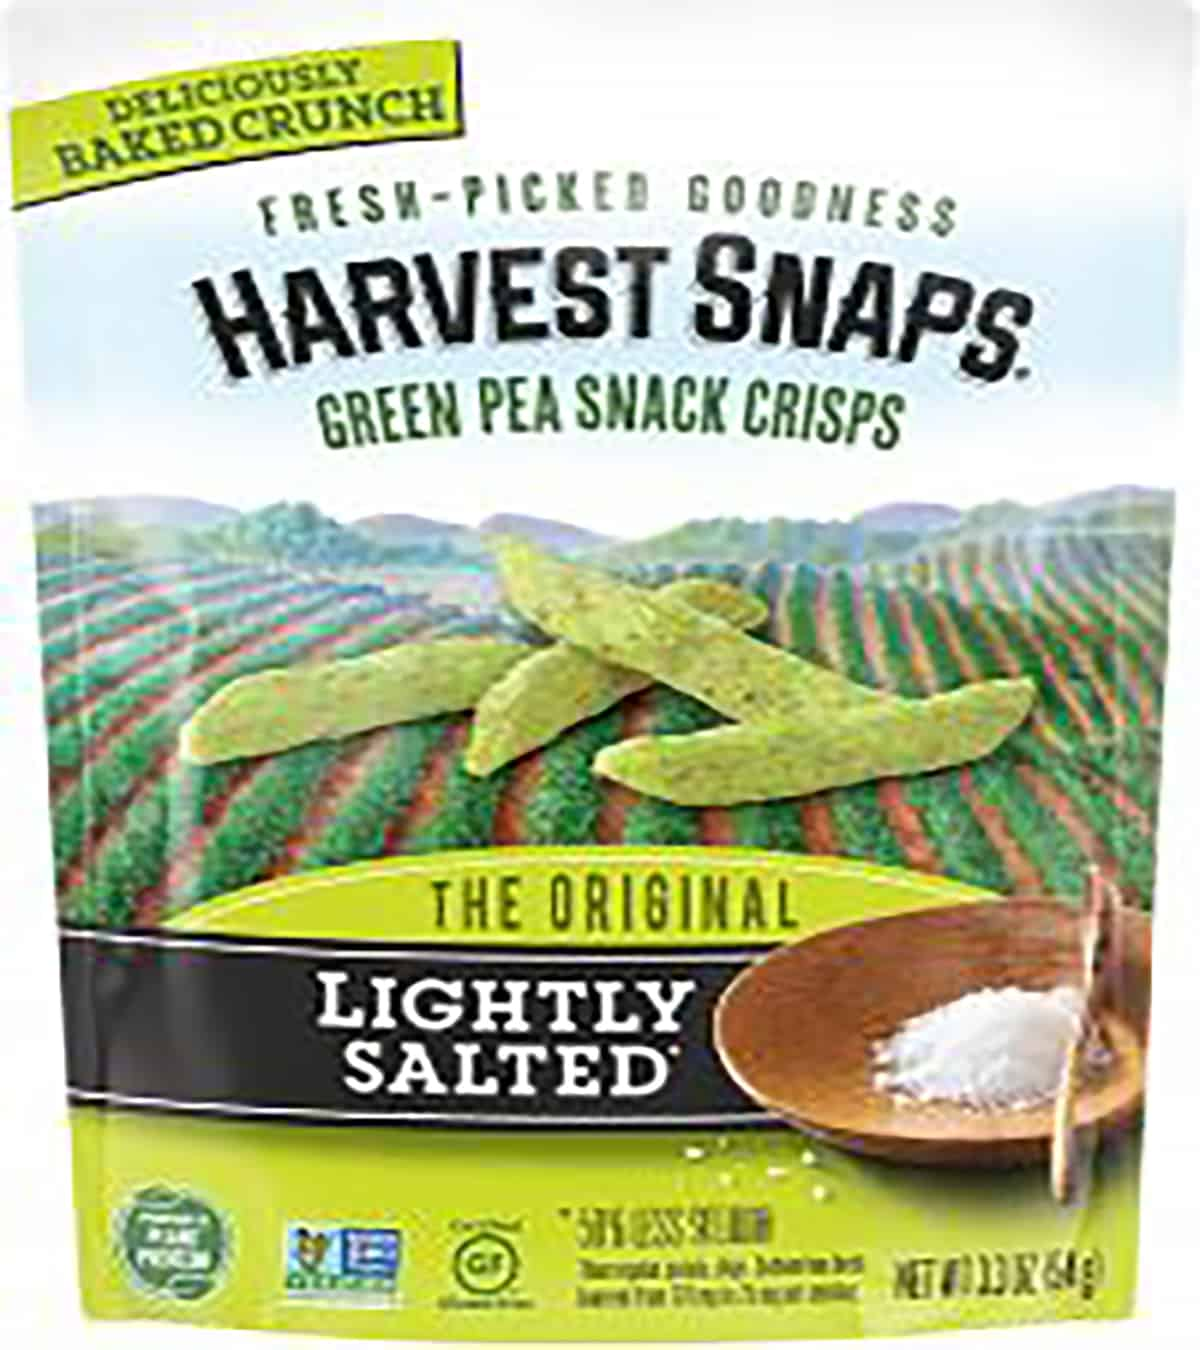 A package of harvest snack green pea crisps.